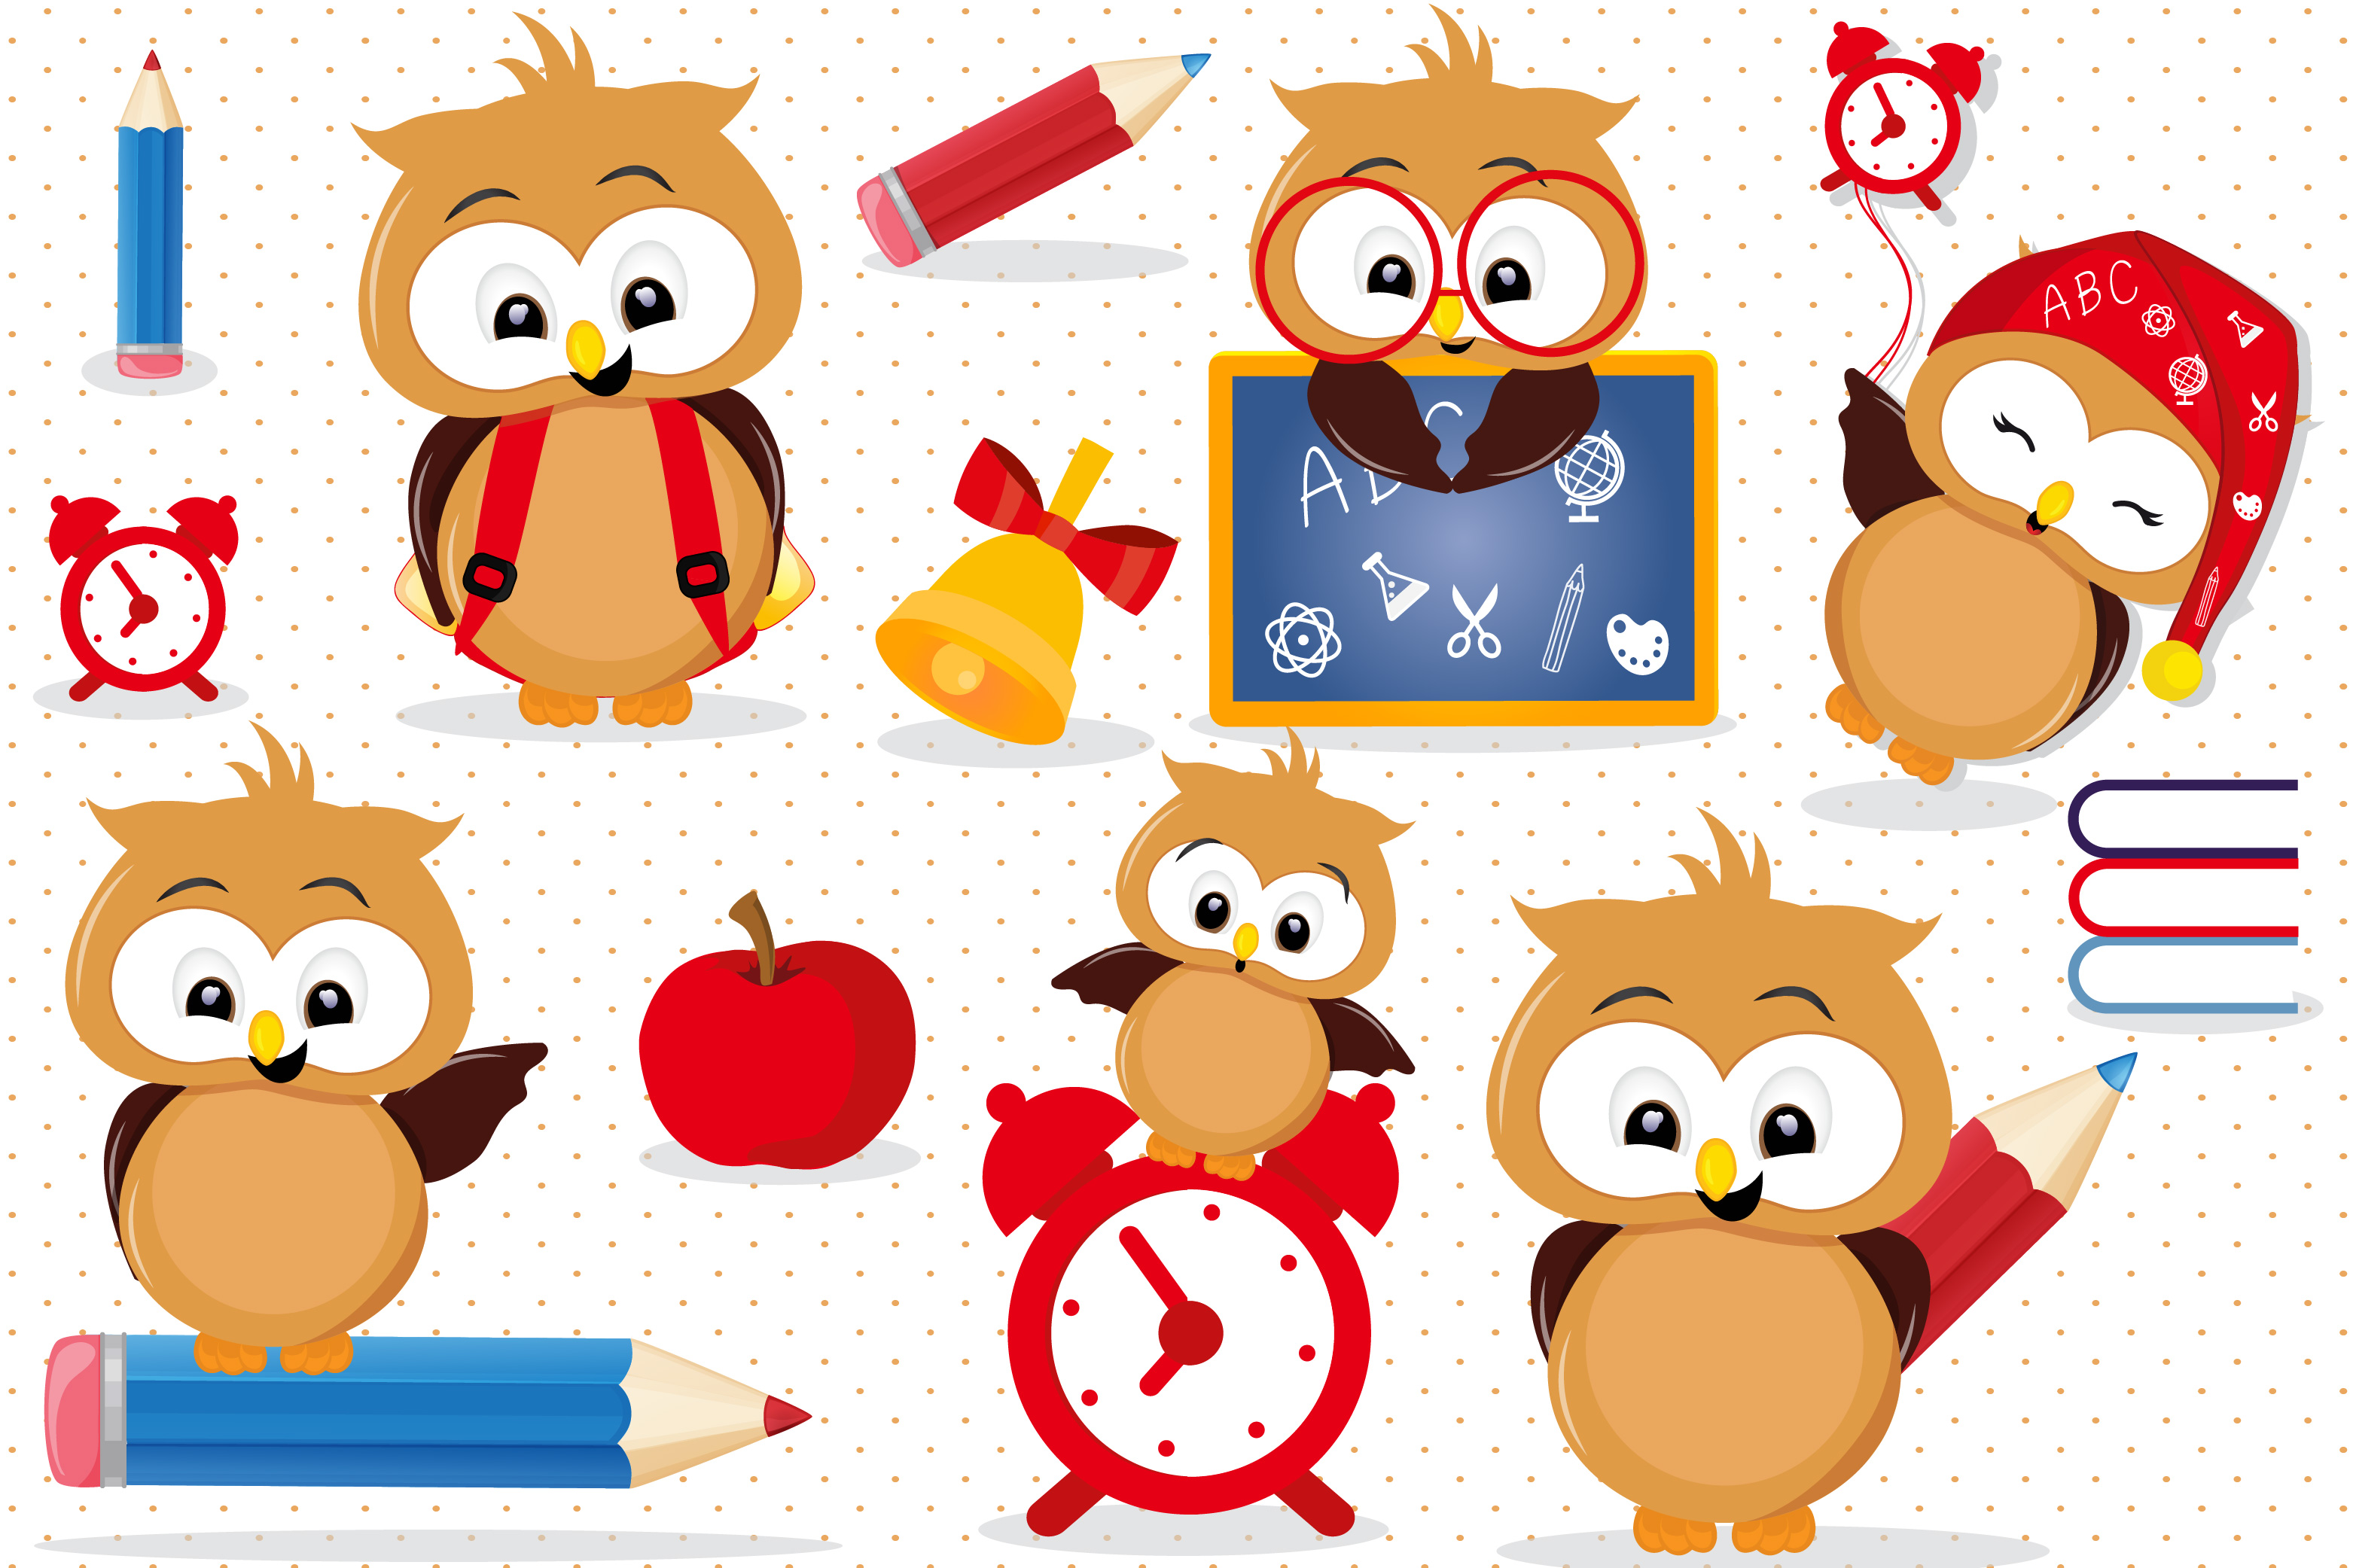 Back to school Owls clipart, Back to school Owls graphics